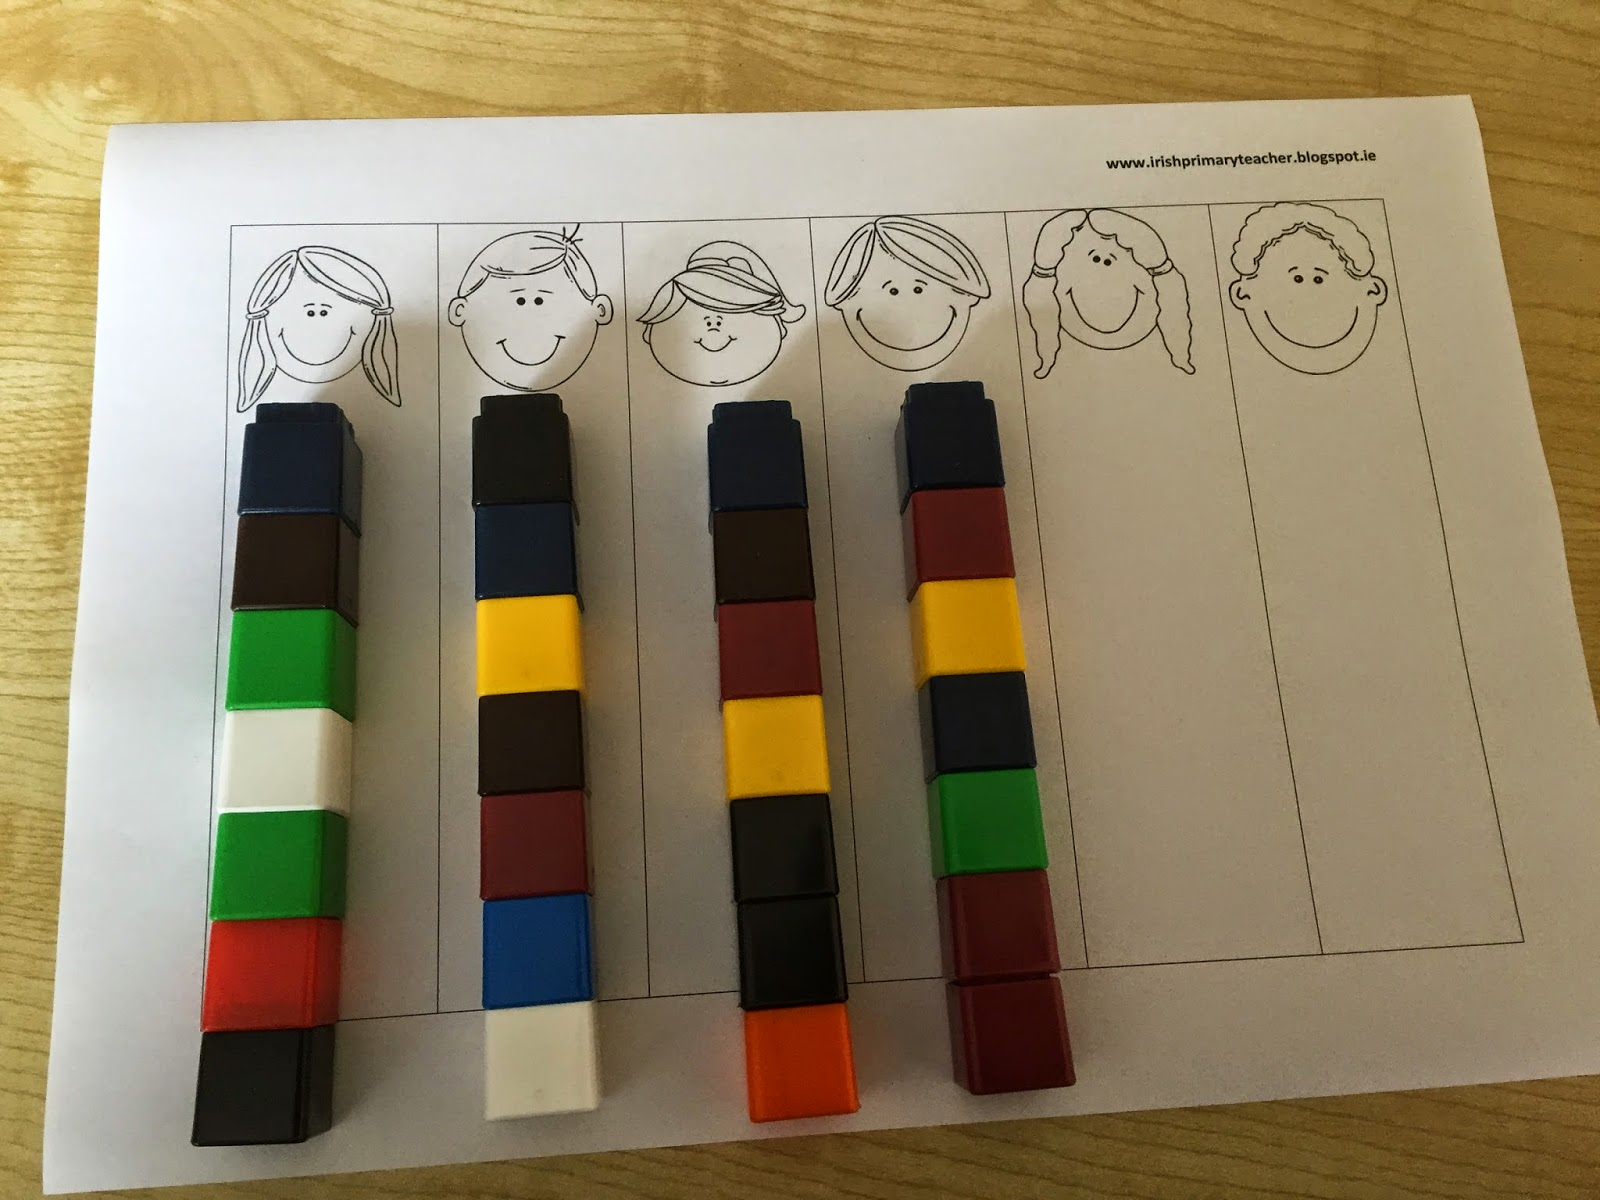 worksheet Multiplication Aids visual aids for multiplication and division irish primary teacher